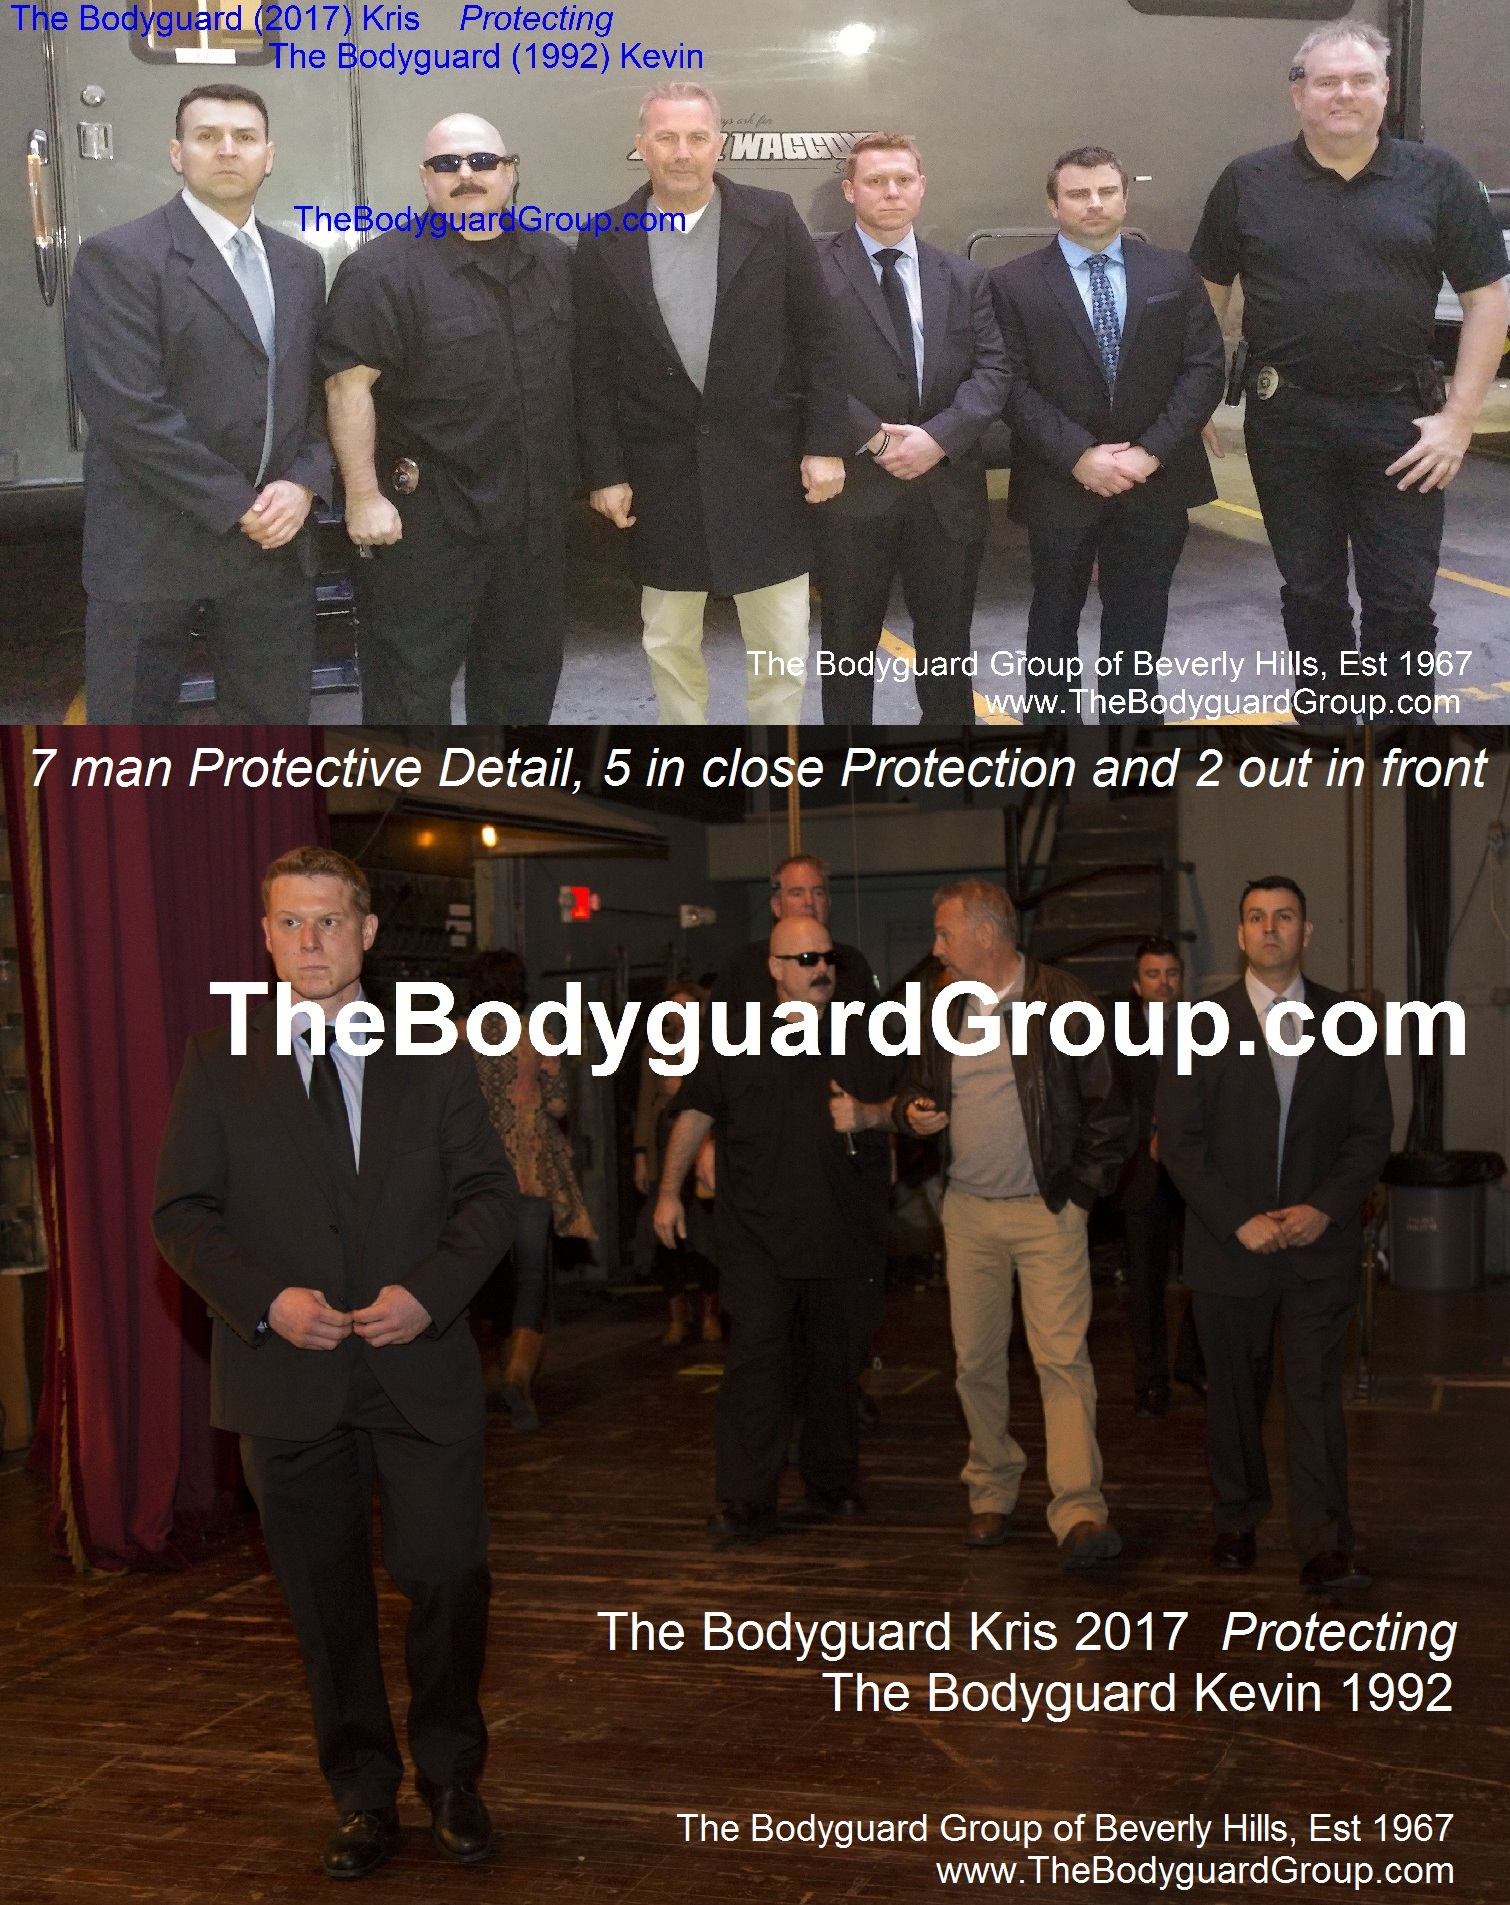 Famous celebrity bodyguard Kris Herzog and The Bodyguard Group of Beverly Hills security, los angeles ca bodyguards for hire 90210